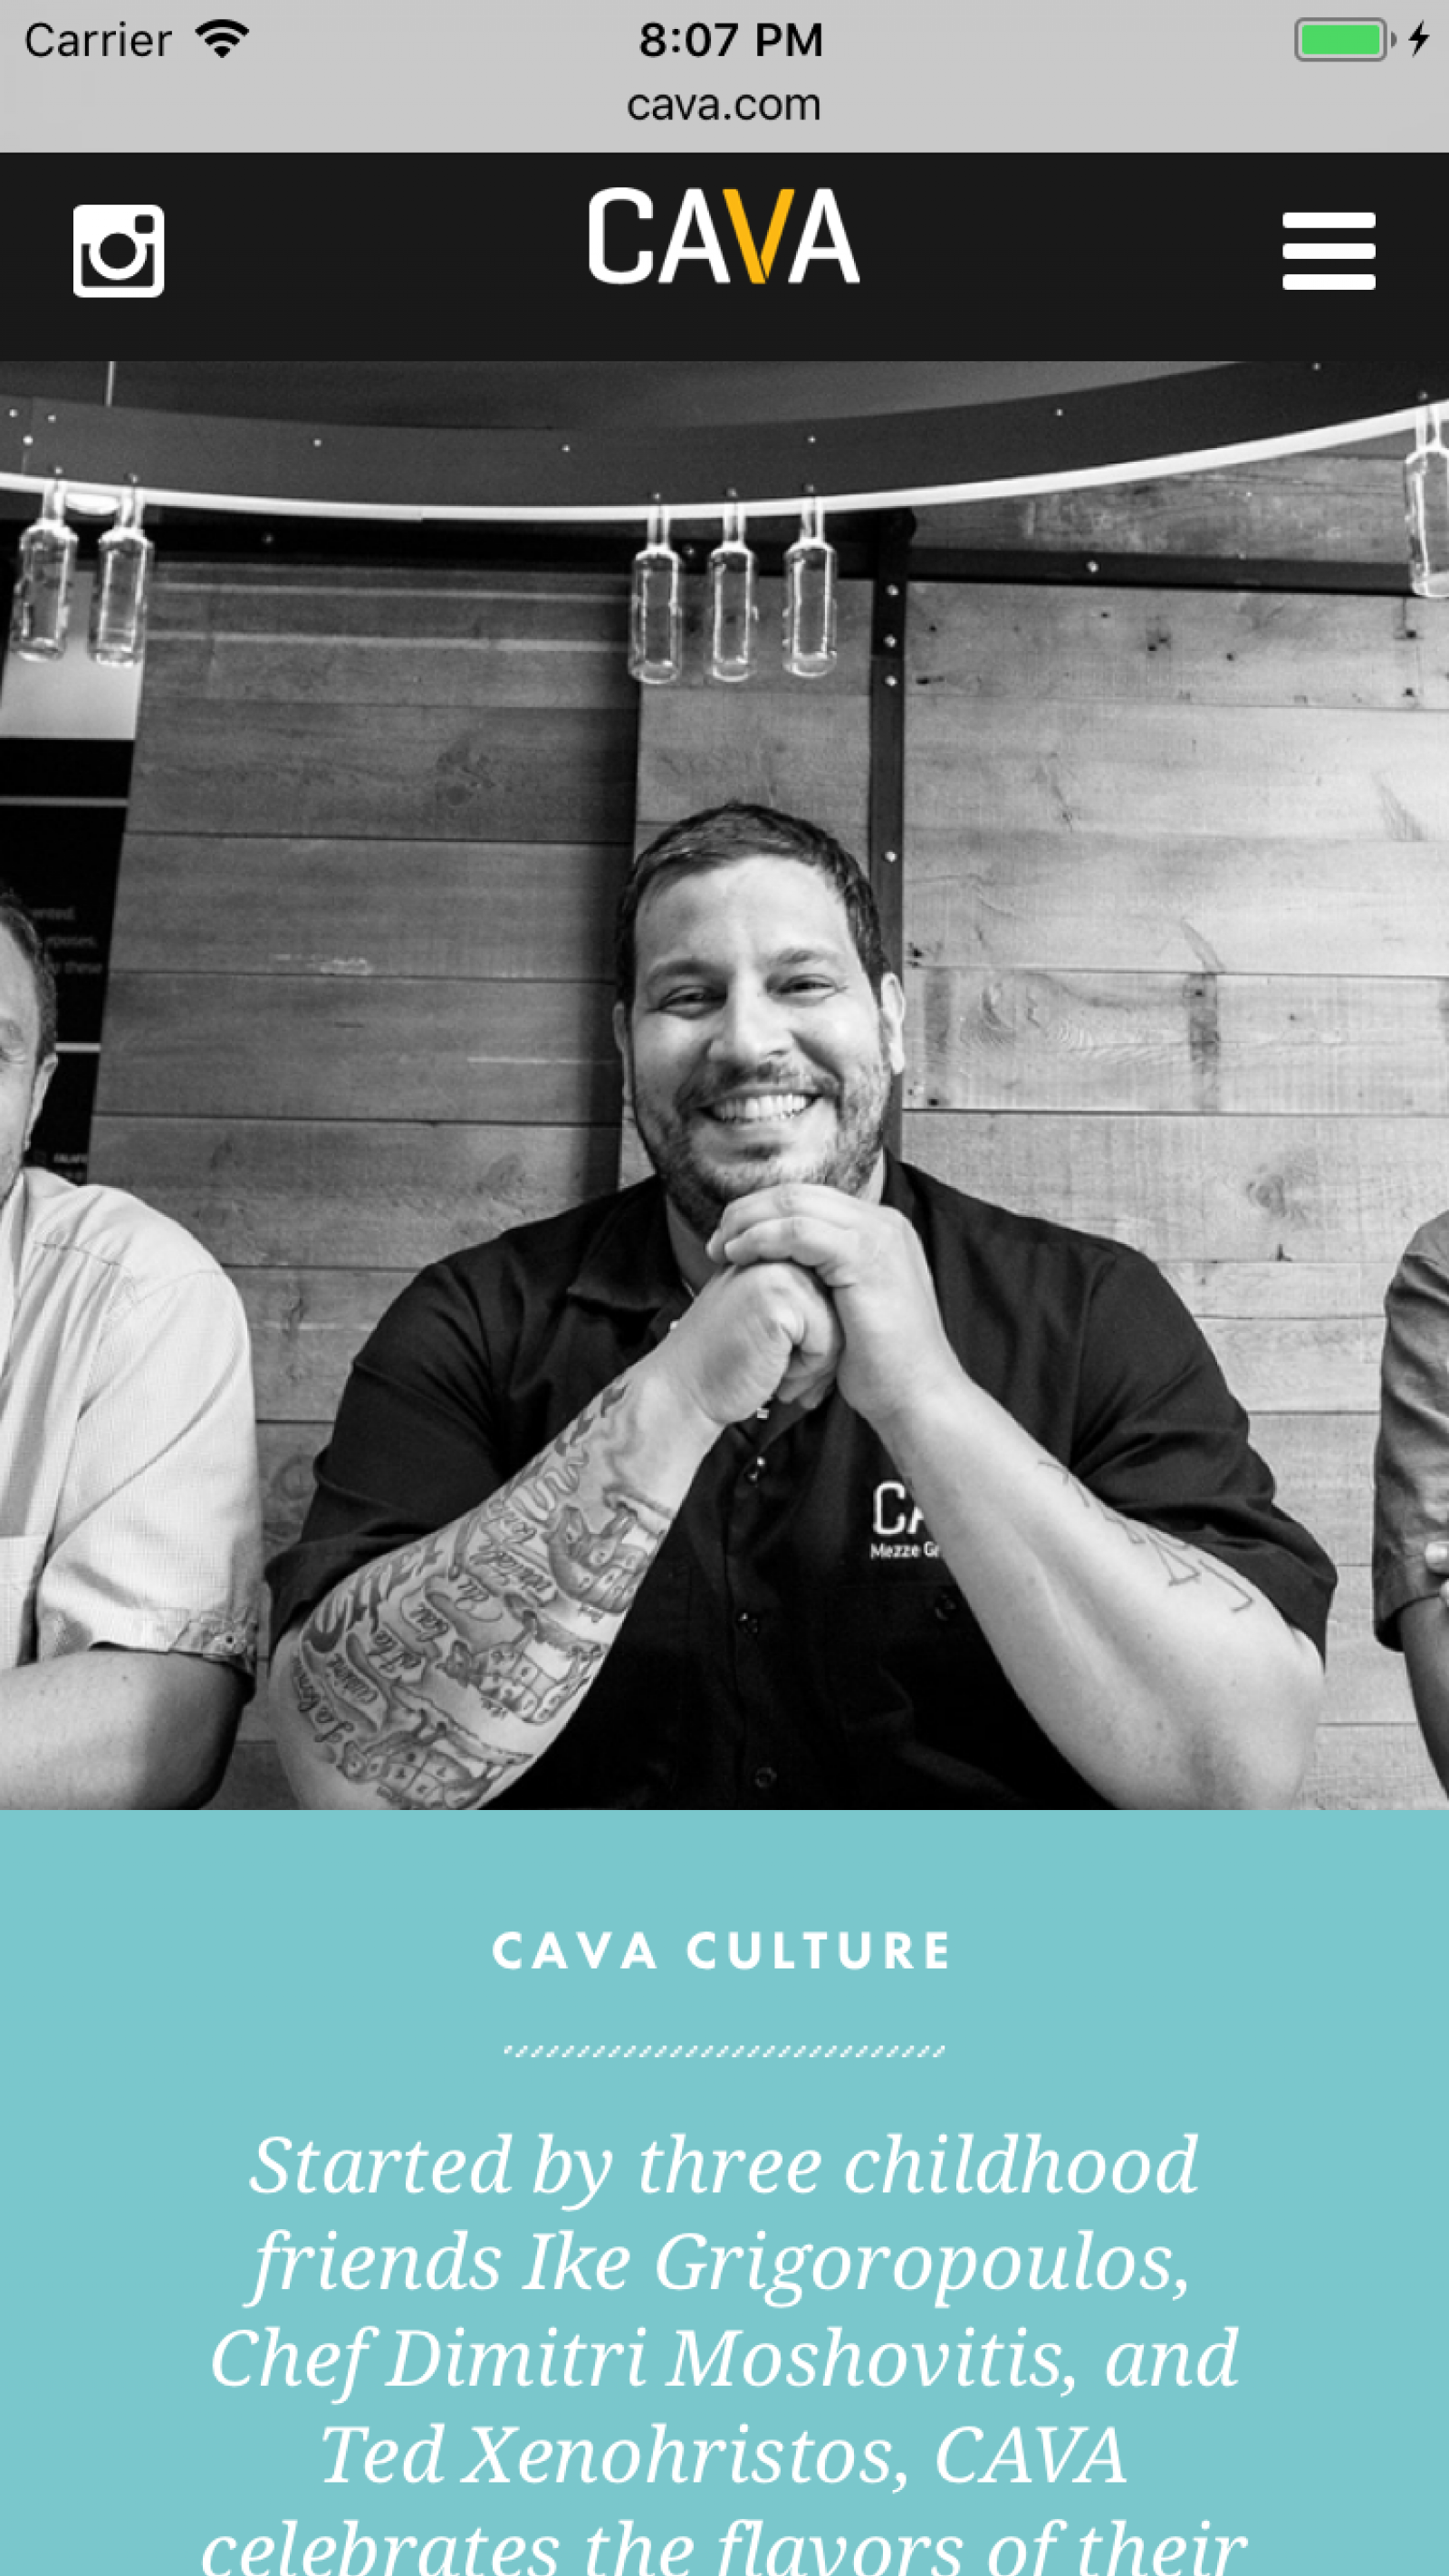 Cava culture on mobile